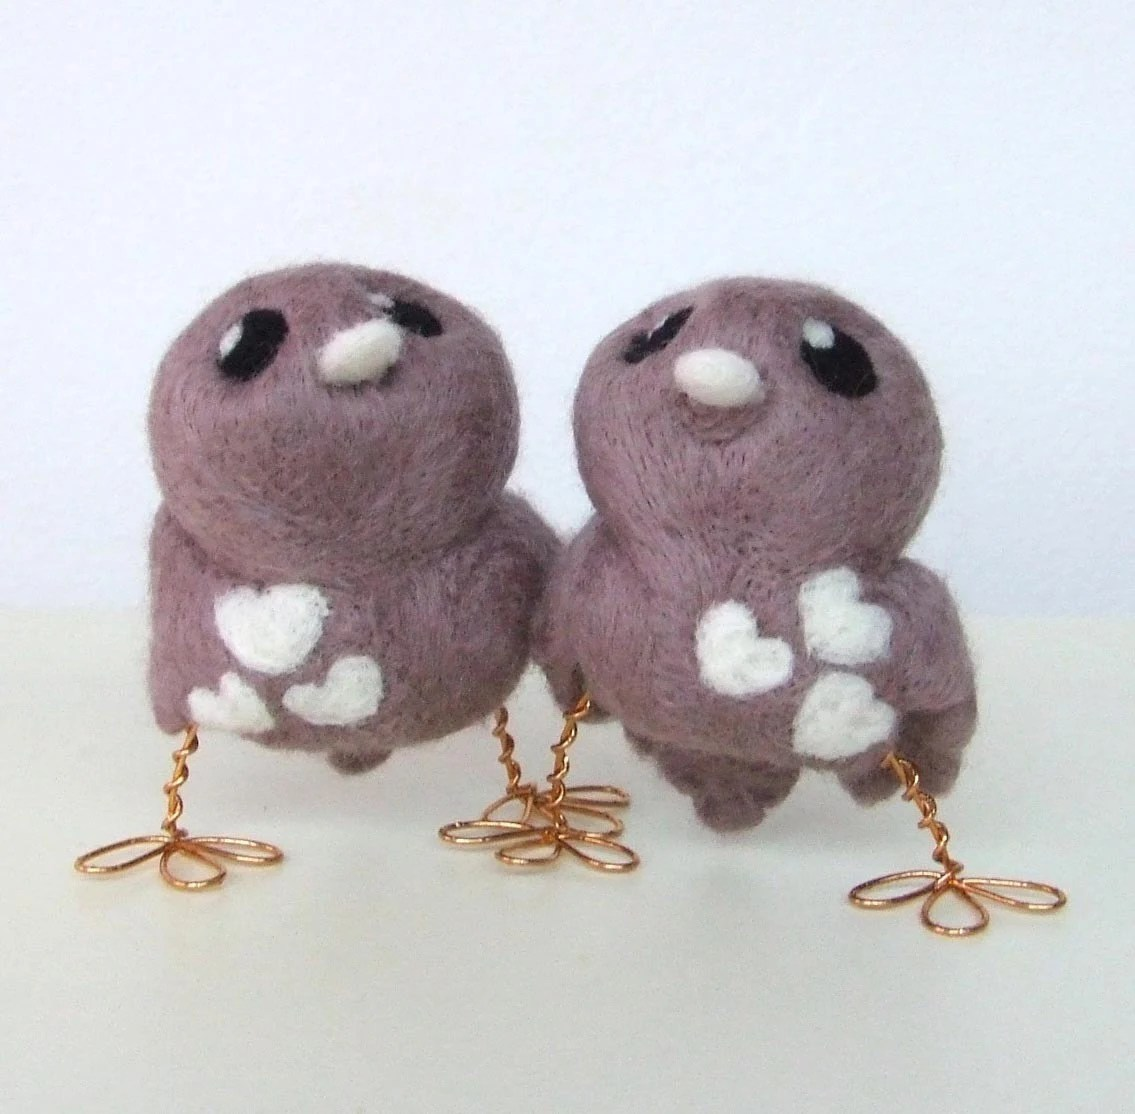 Cocoa and Cream Natural White and Mink Love Birds Wedding Cake Topper